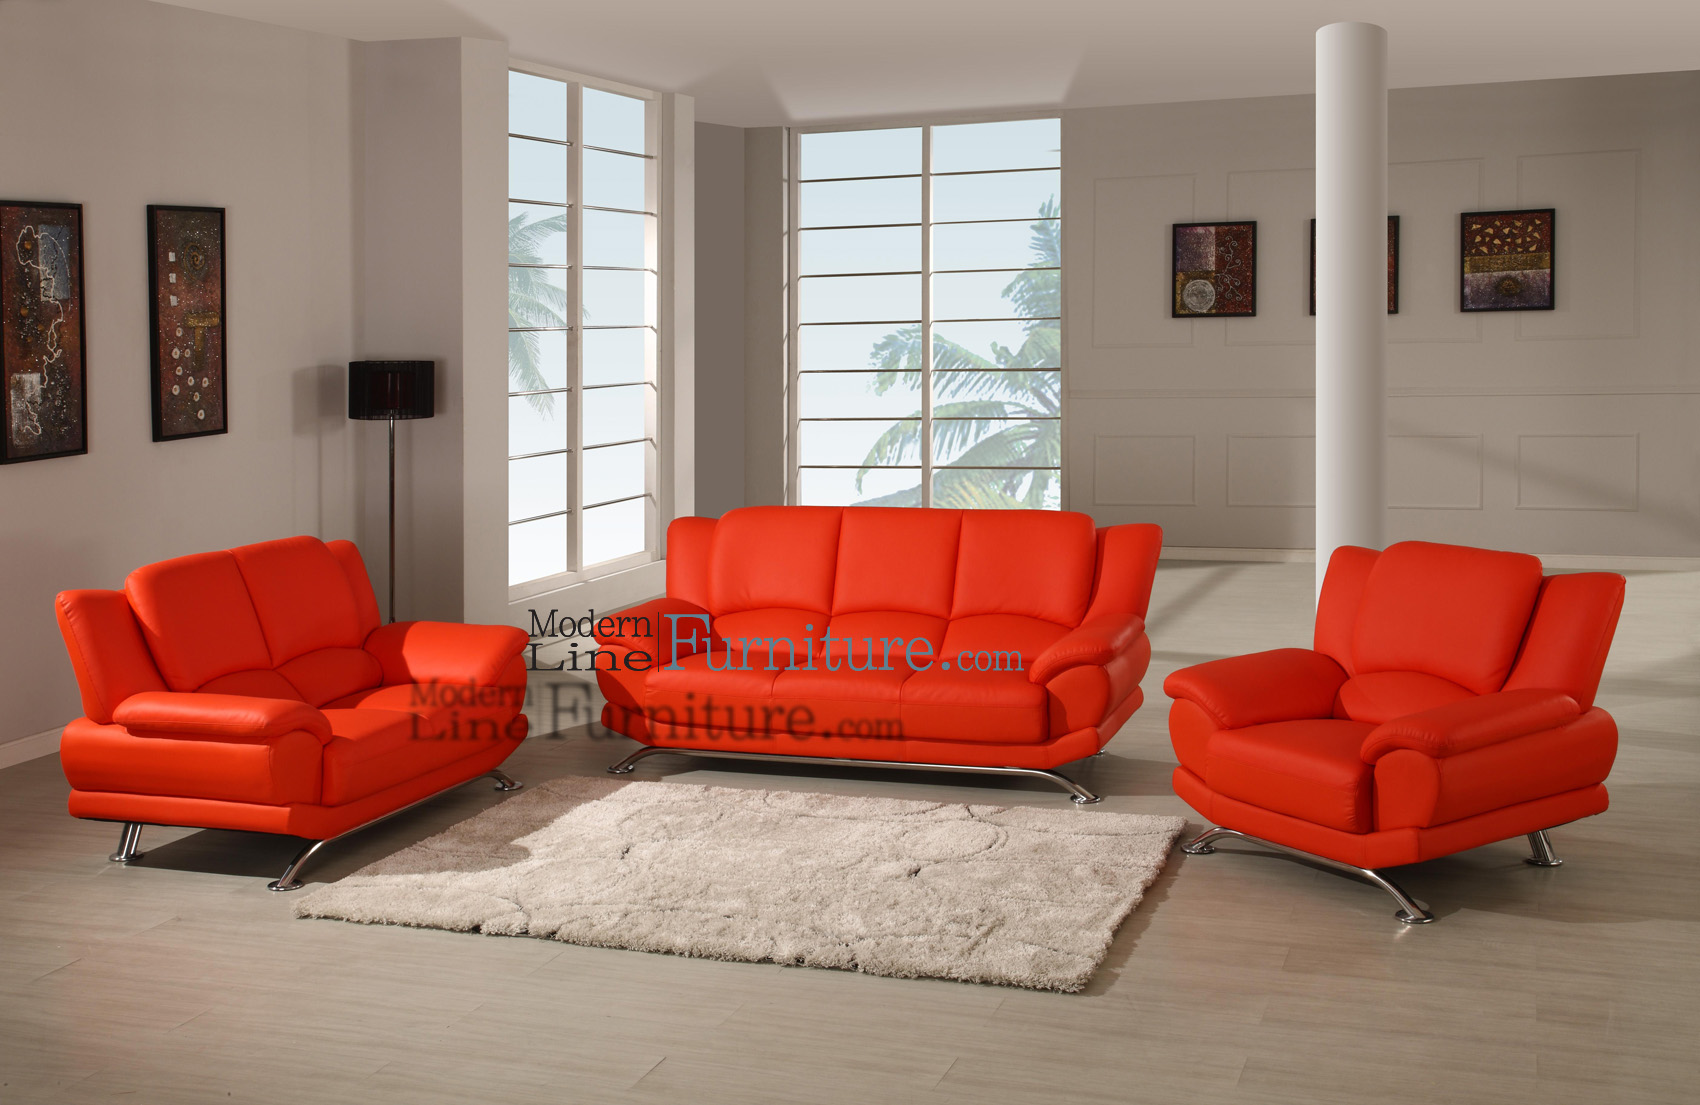 Modern Line Furniture   Commercial Furniture   Custom Made Furniture | Modern  Furniture Red Leather 3PC Living Room Set